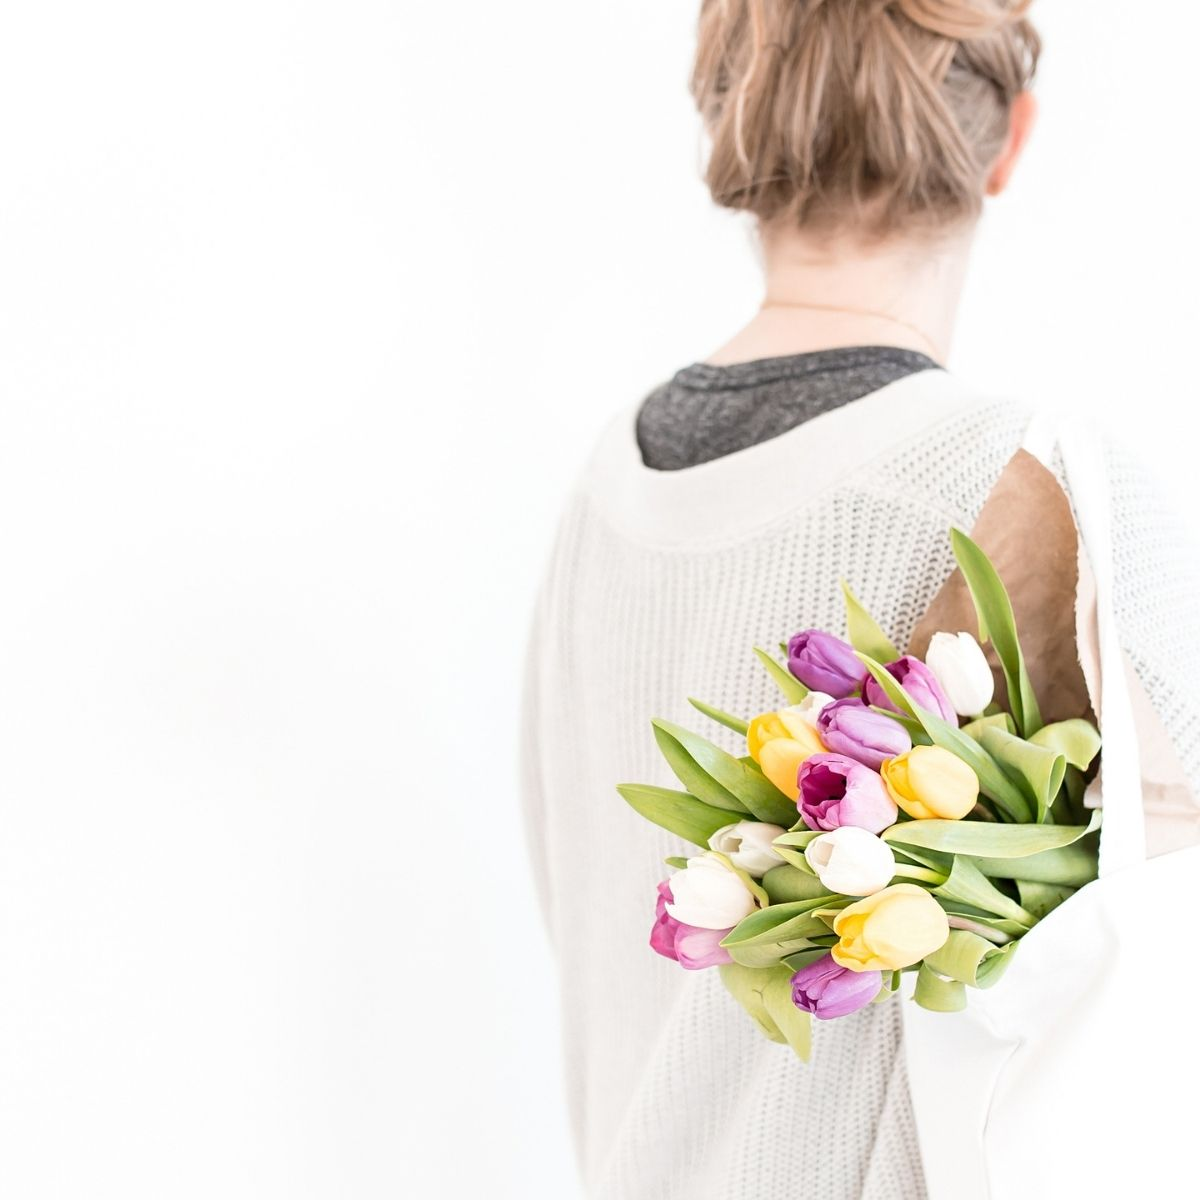 Holding tulips in a bag